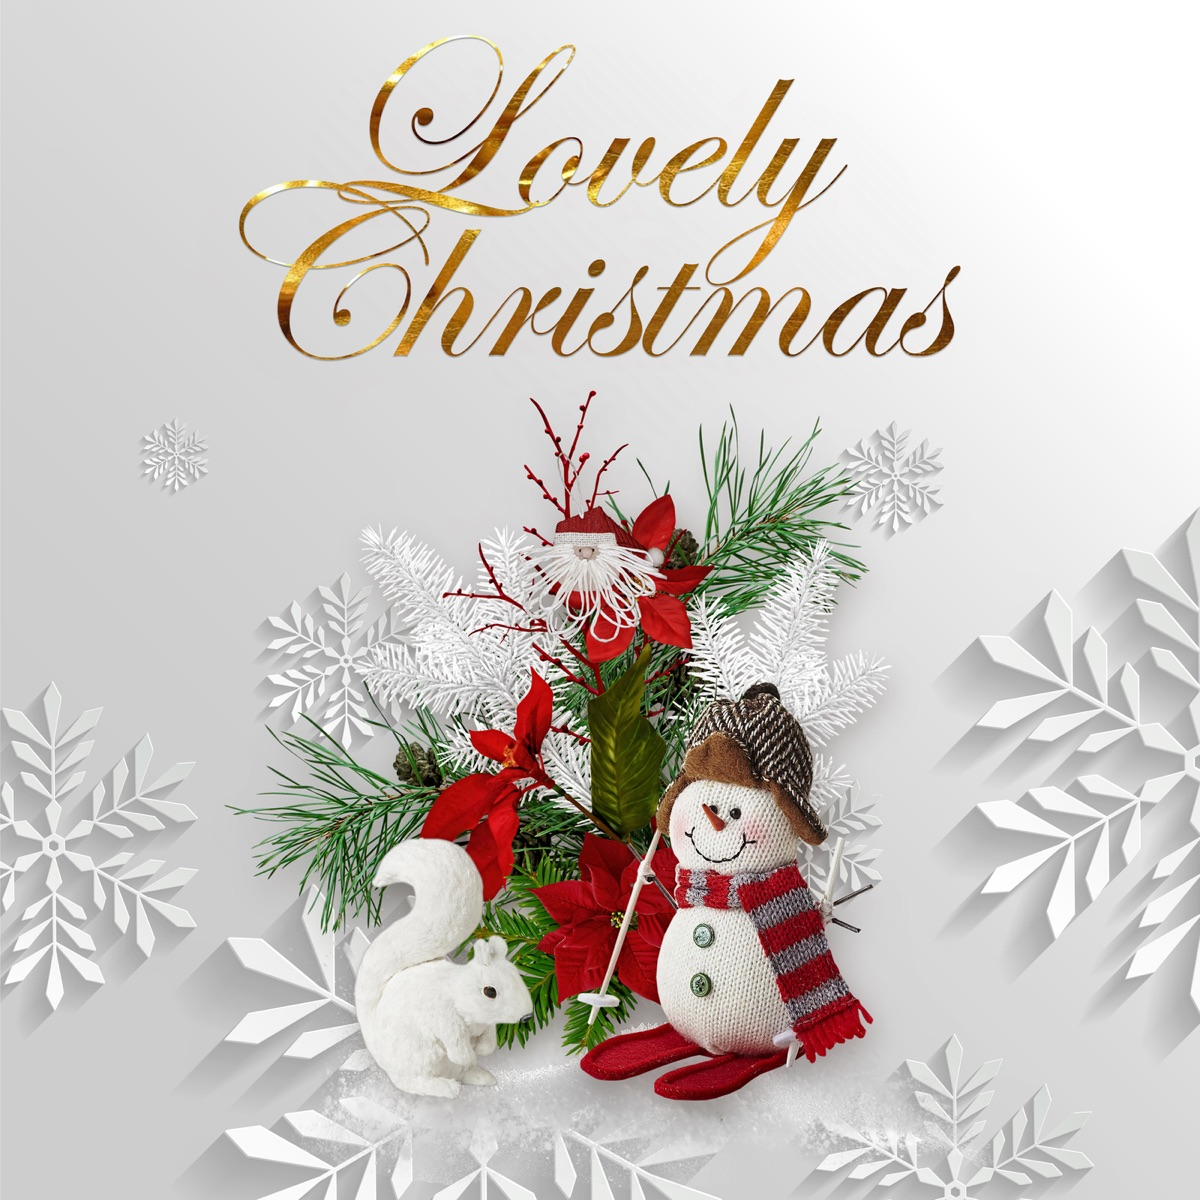 Lovely Christmas: The Sweet Sounds of Christmas - Christmas Healing ...